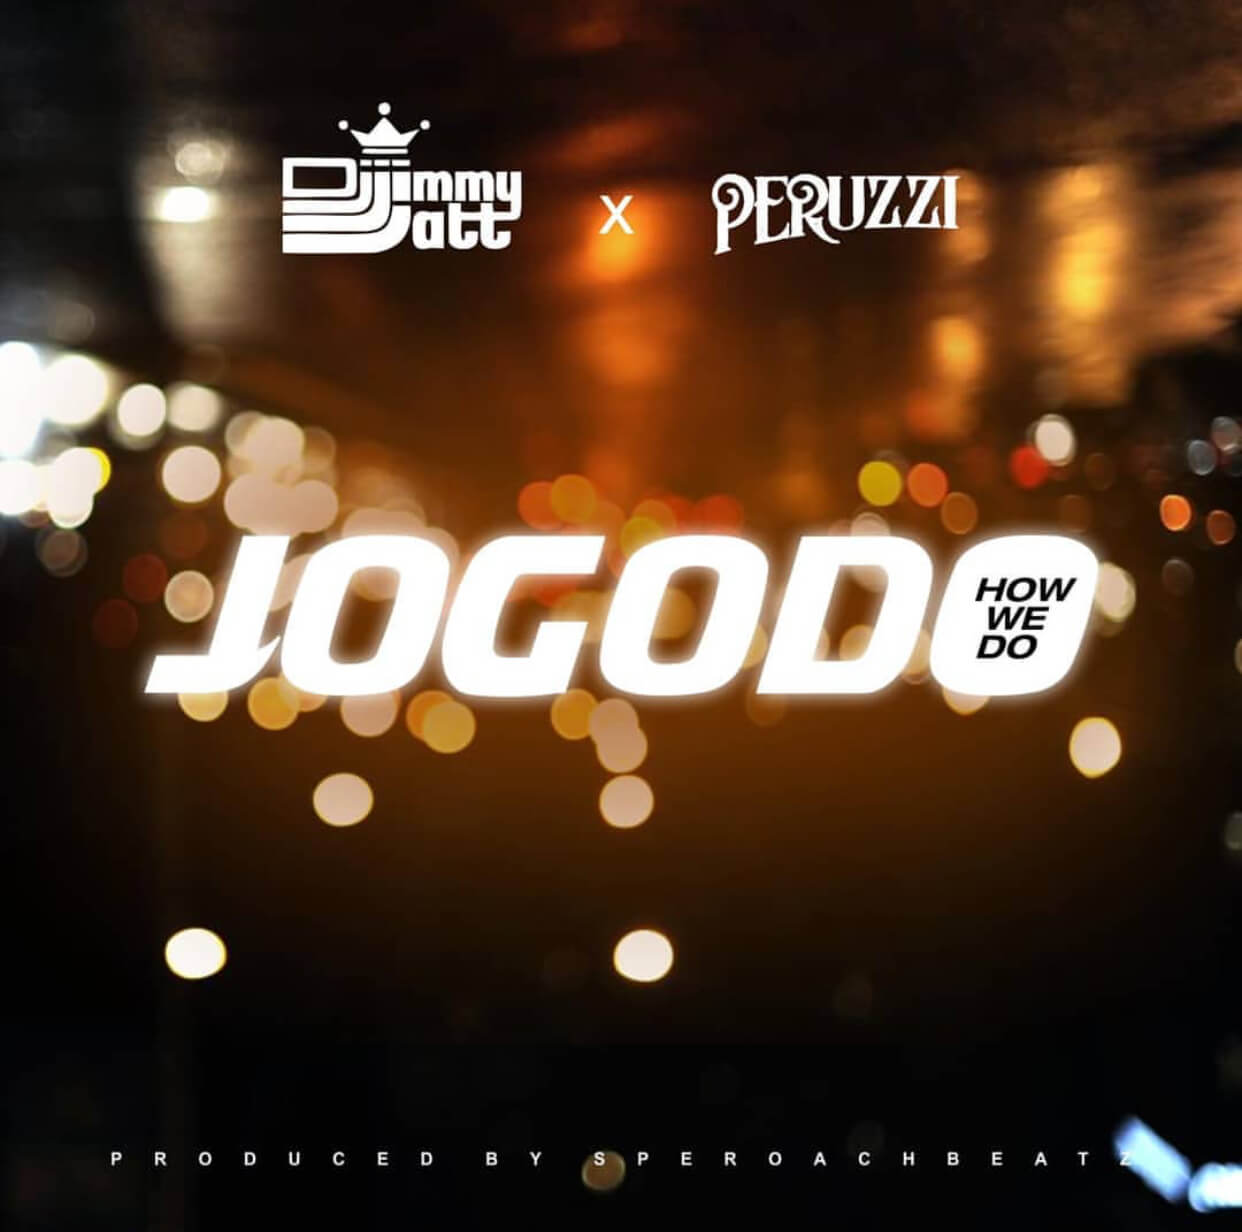 DJ Jimmy Jatt - Jogodo ft. Peruzzi